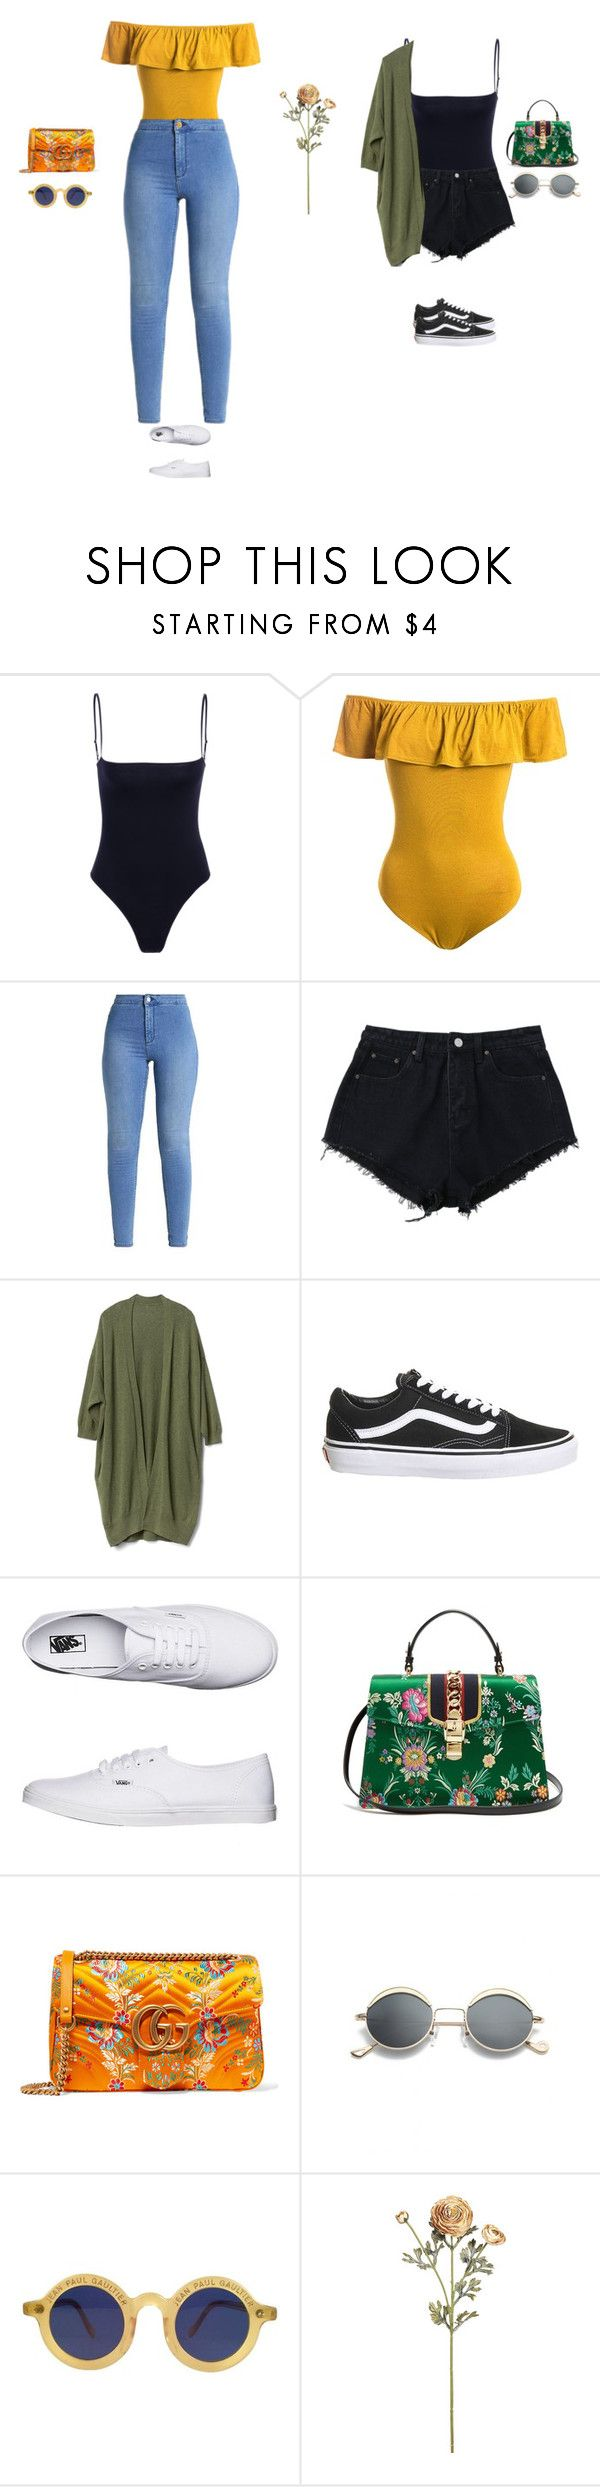 """double trouble"" by xoxotiffvni on Polyvore featuring Sans Souci, Gap, Topshop, Vans, Gucci and Jean-Paul Gaultier"